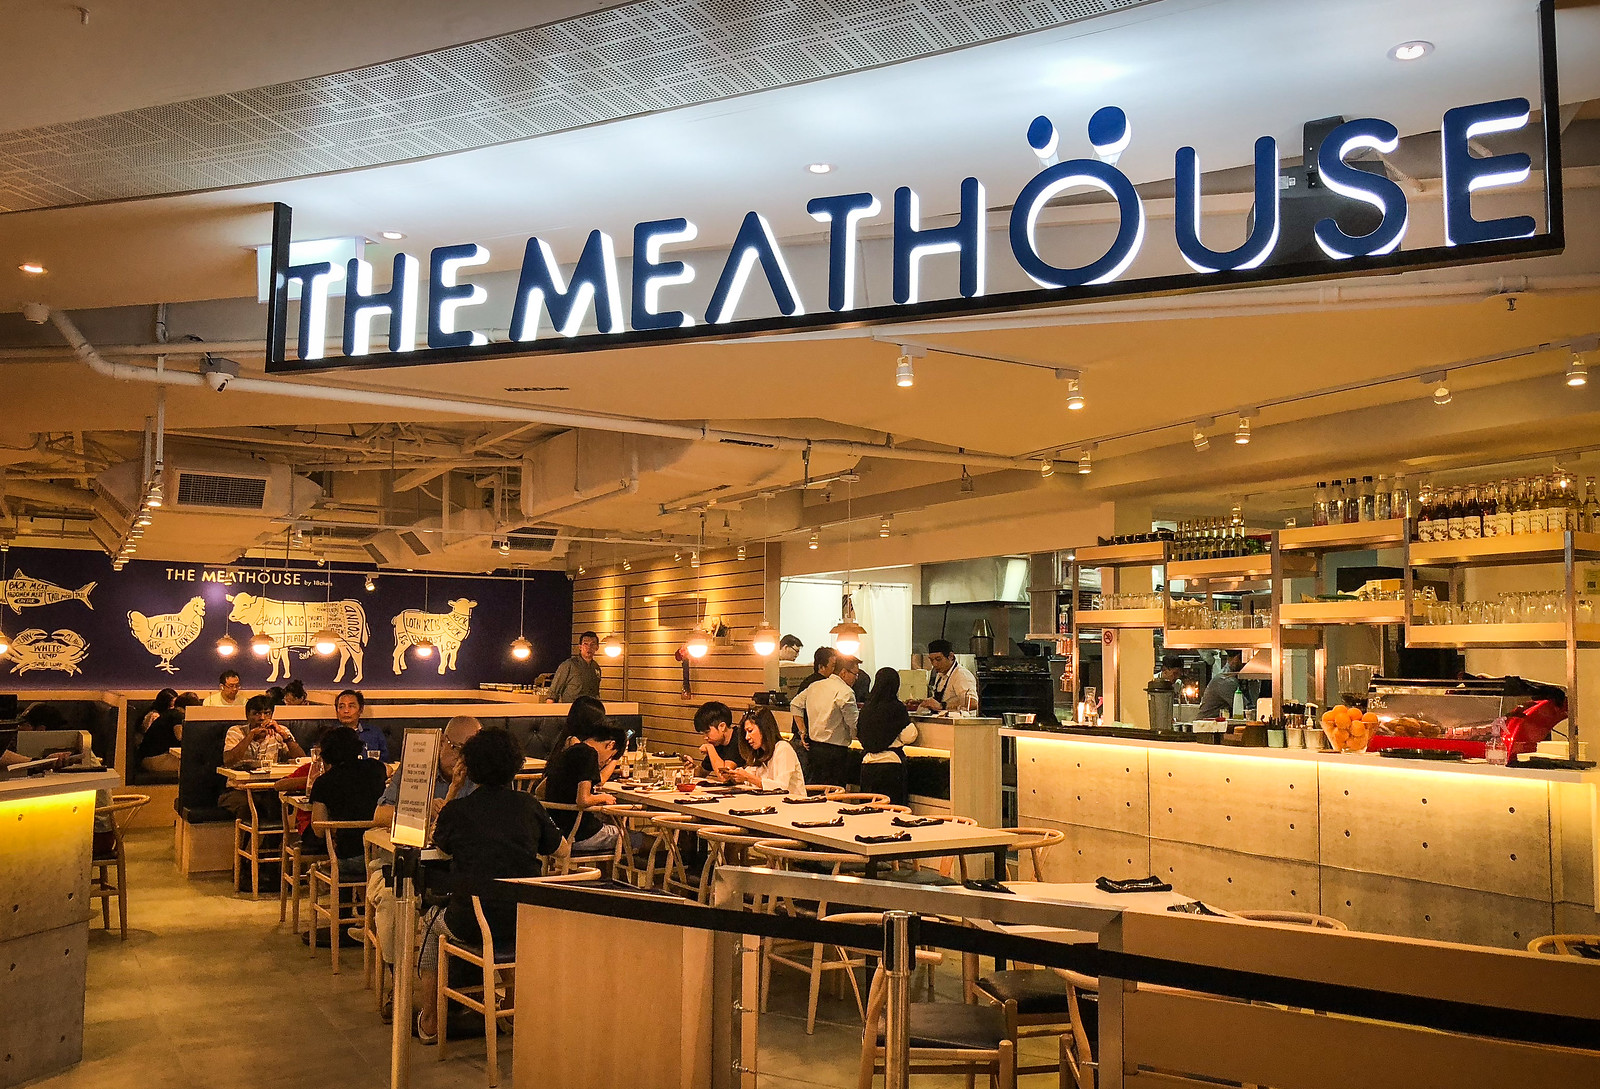 The Meathouse by 18Chefs - A New Halal-To-Be Steak Joint at